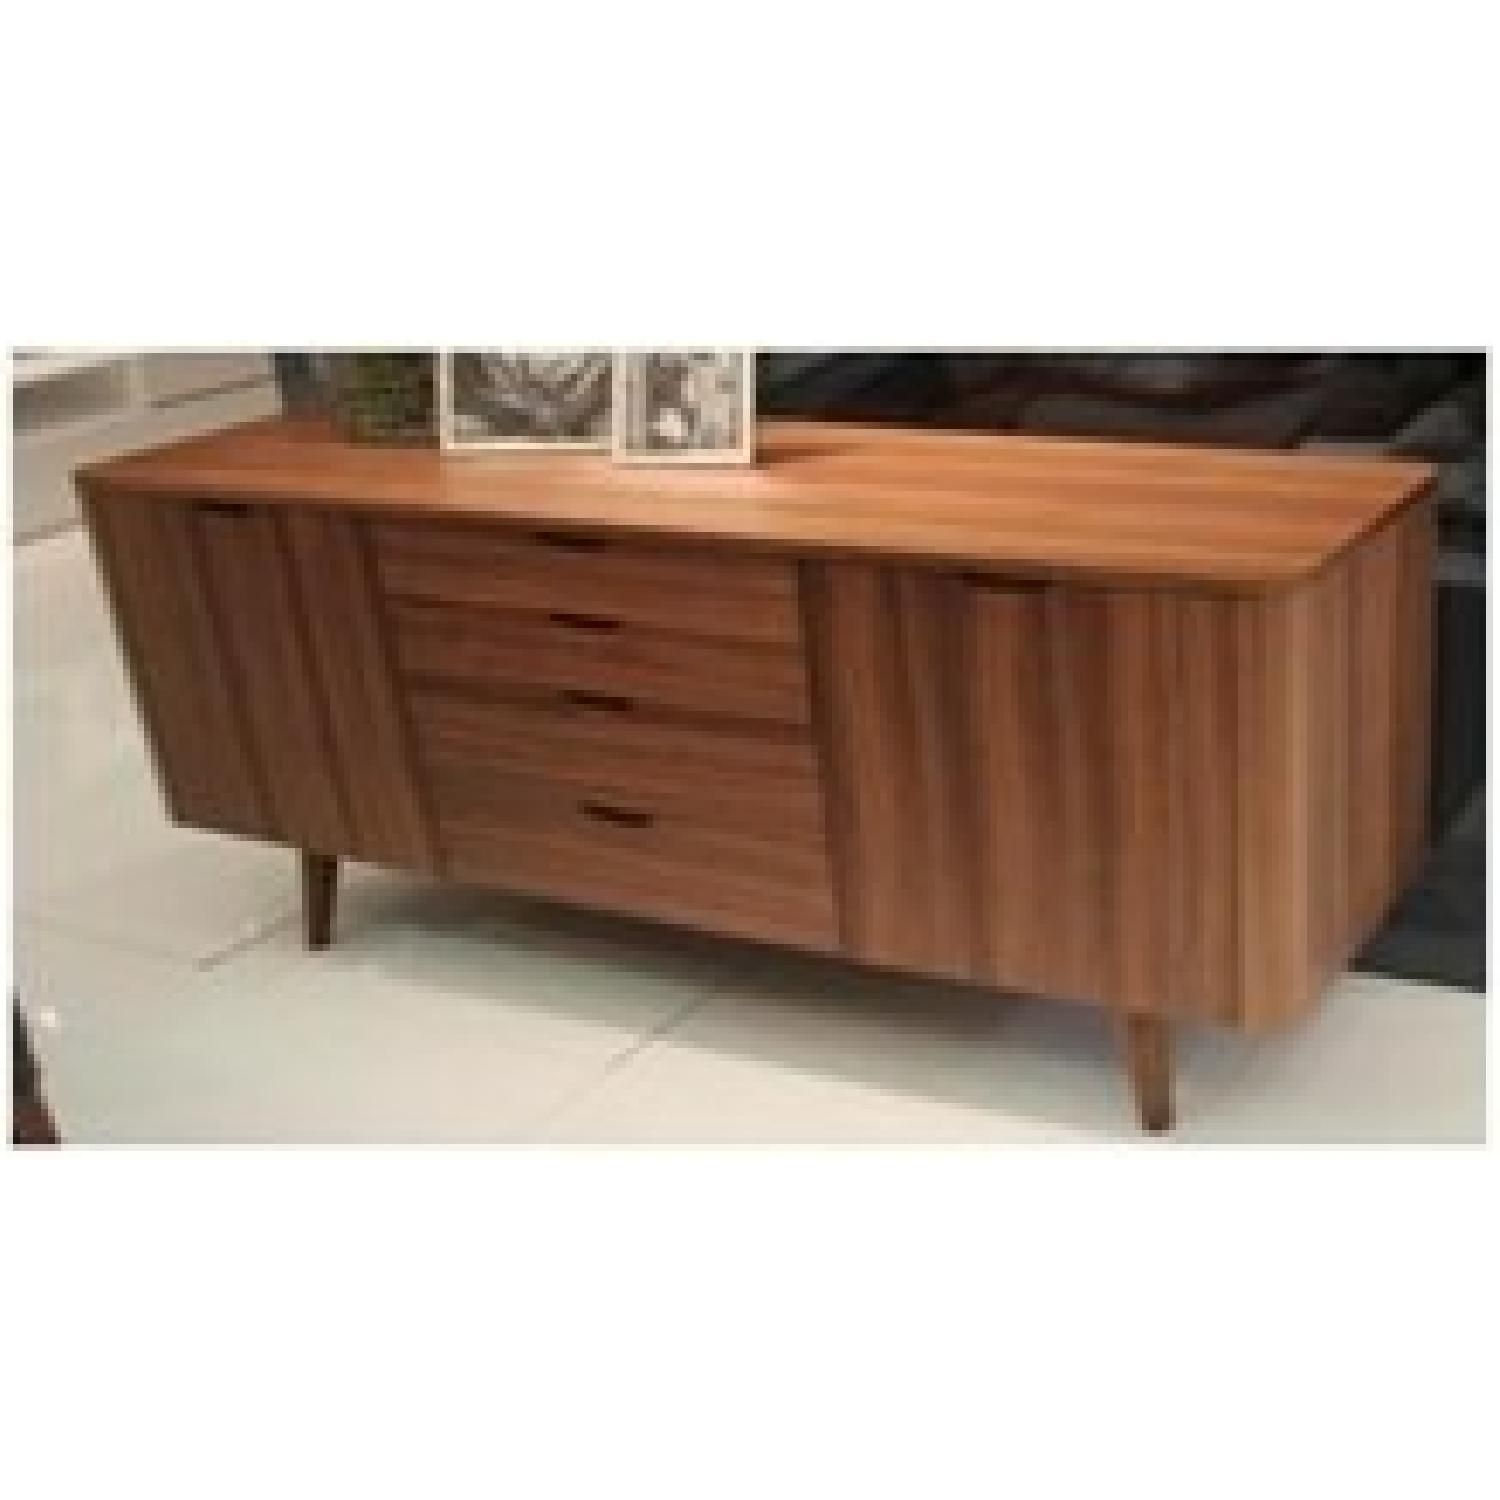 Raymour And Flanigan Dining Room Sets Mid Century Style Buffet Sideboard In Walnut Finish W